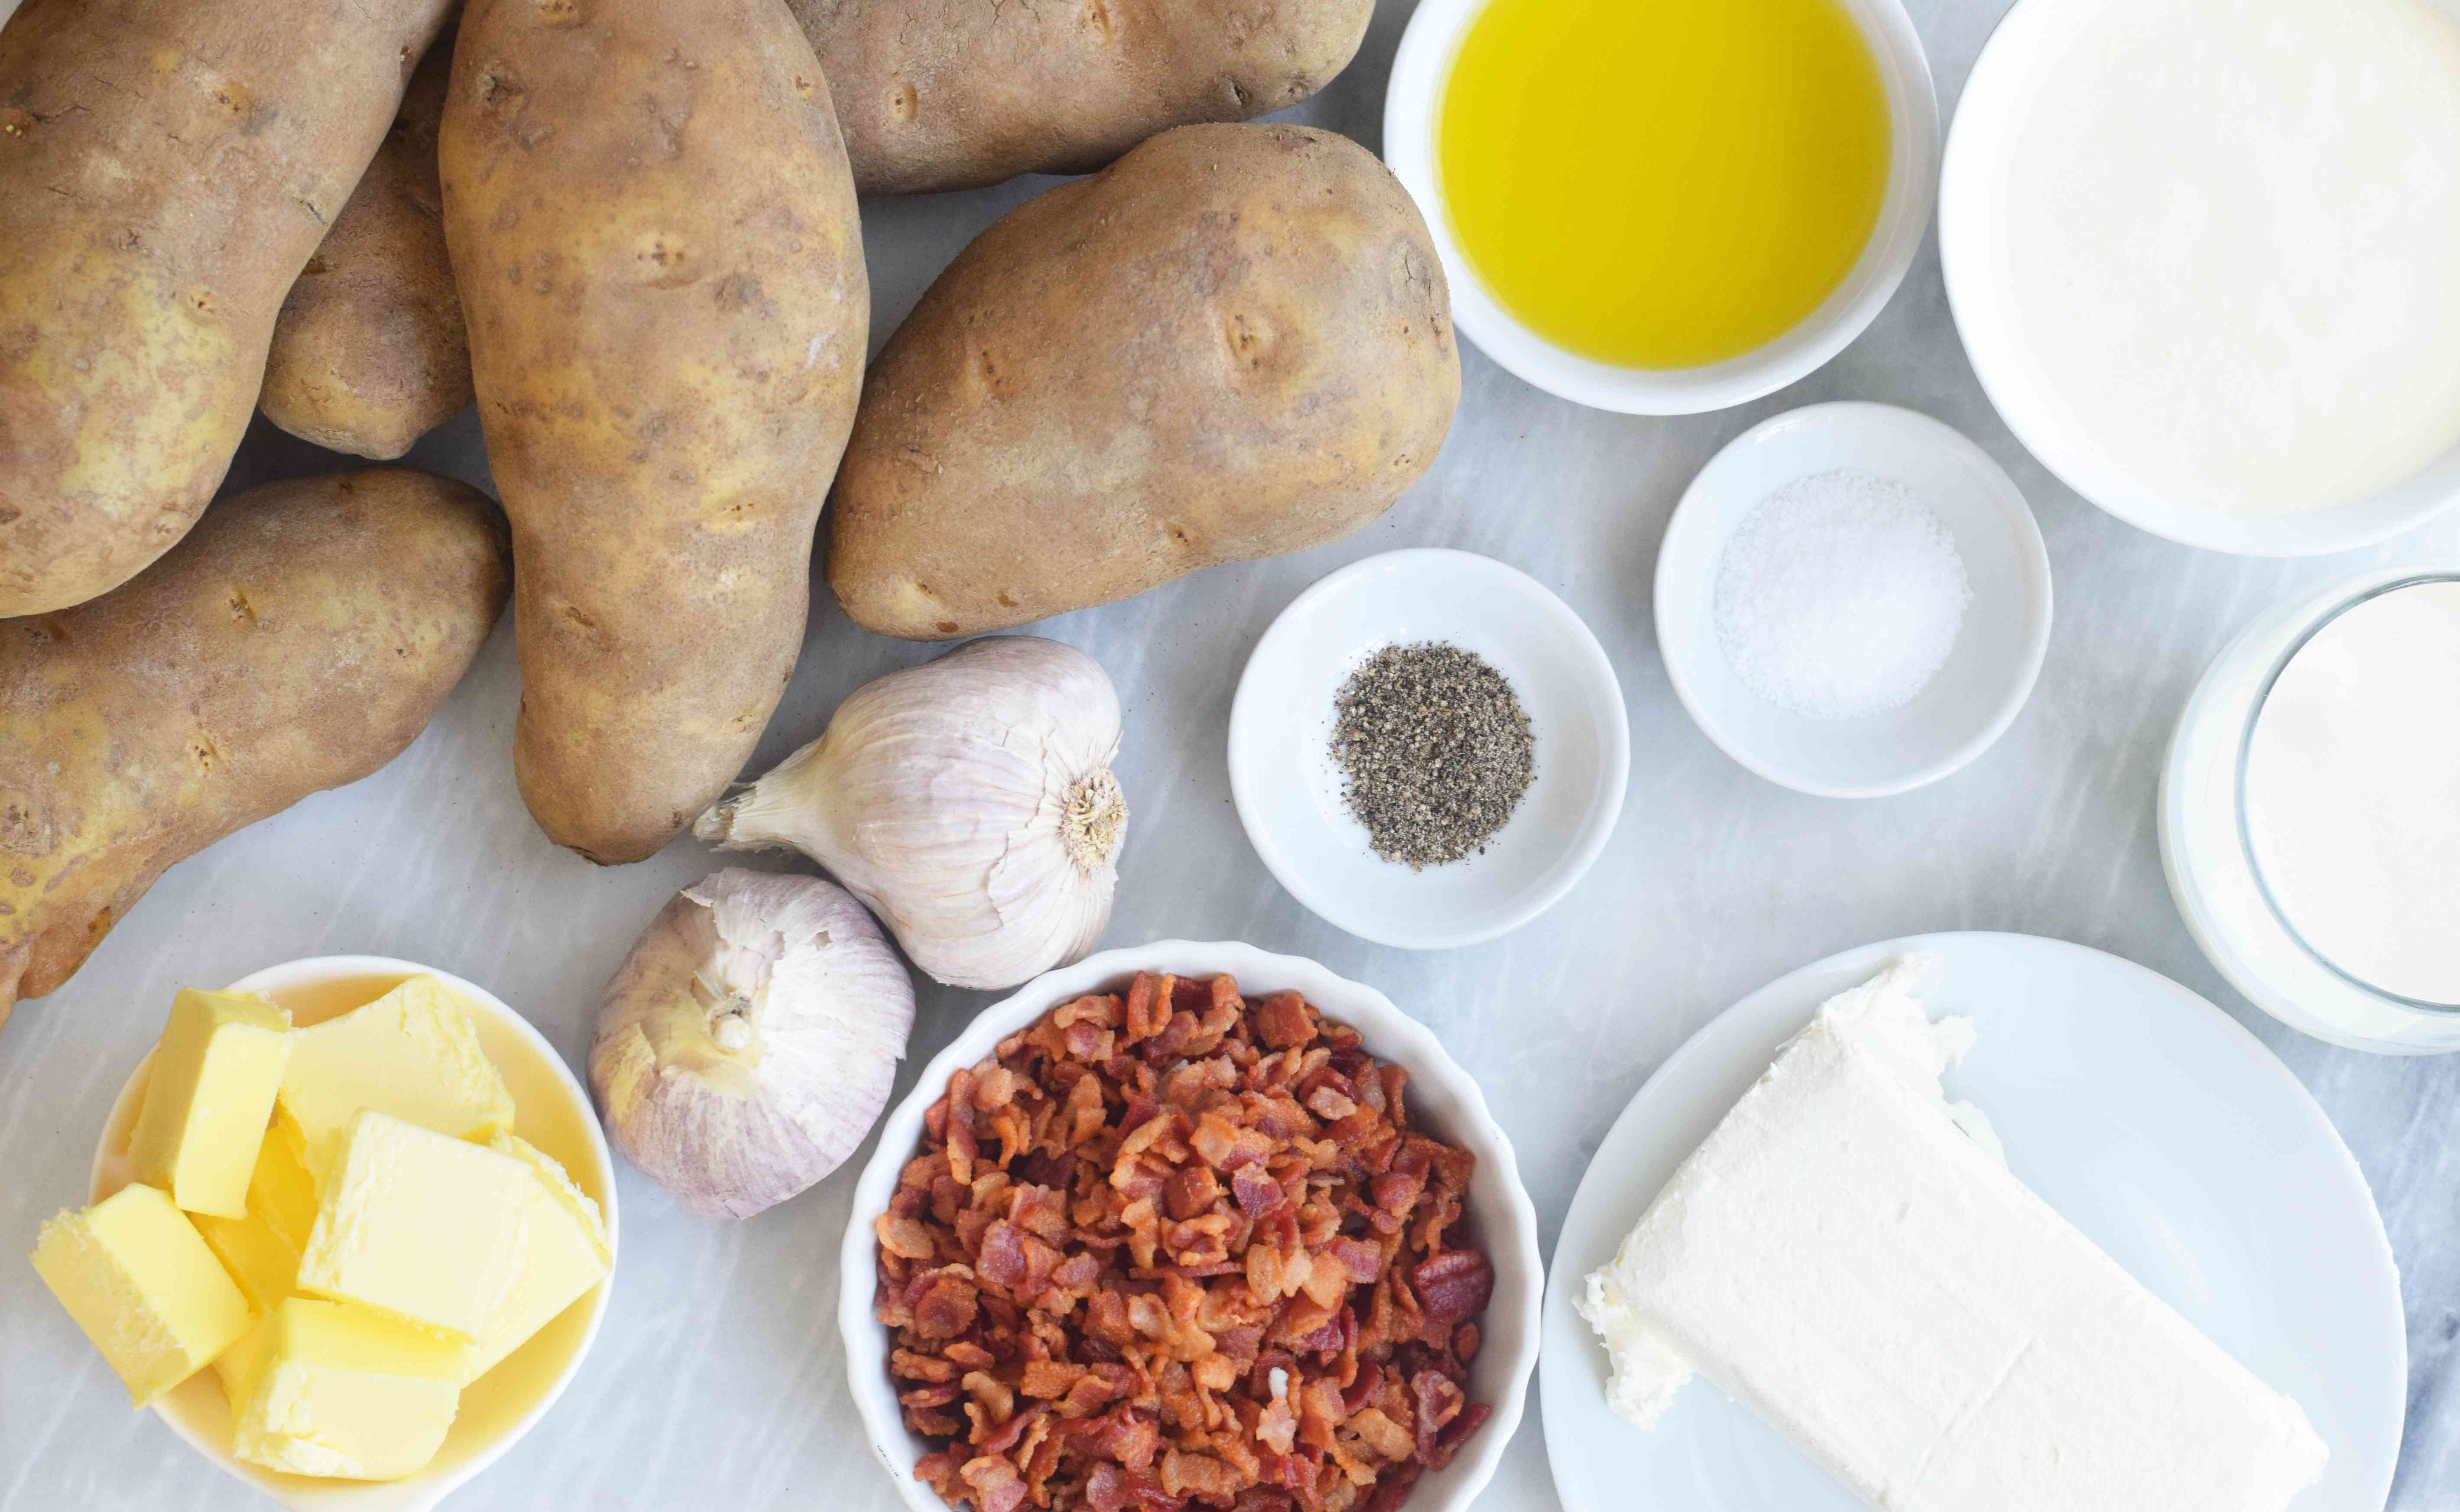 Loaded Mashed Potatoes ingredients